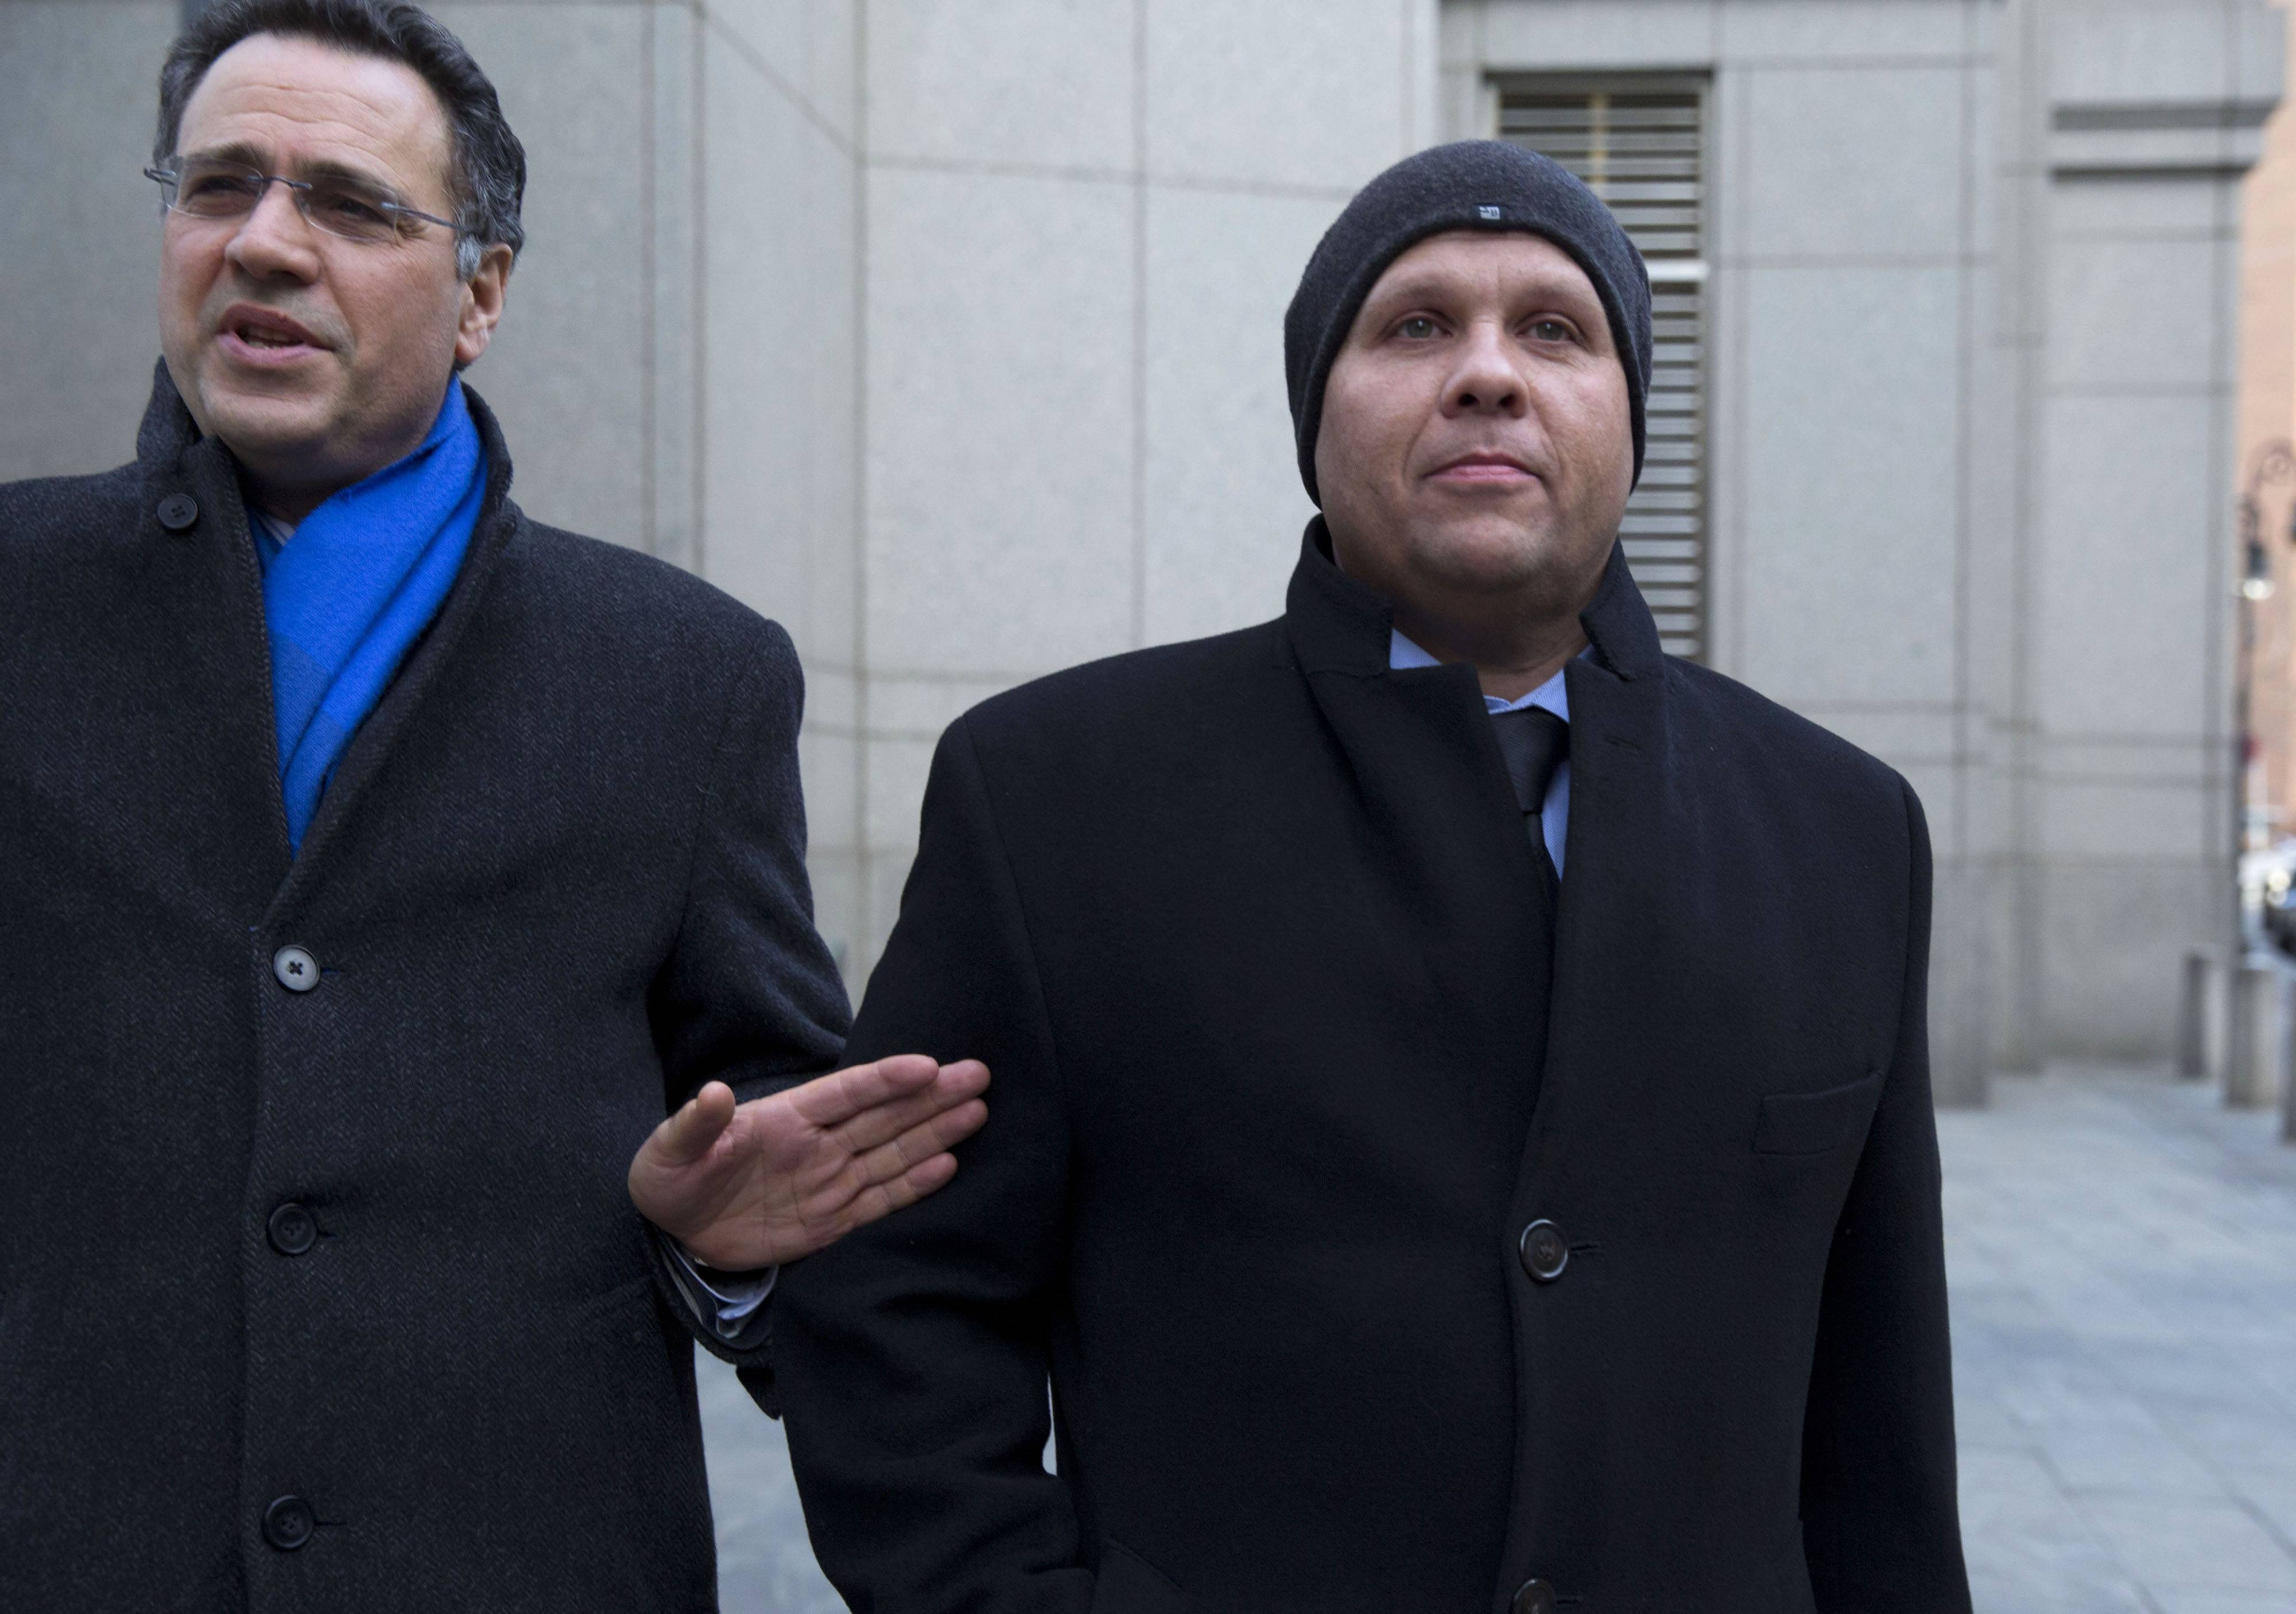 George Perez, a former programmer at Bernard L. Madoff Investments Securities LLC, right, exits federal court in New York on Monday. Five former aides to Bernard Madoff who spent decades working for his firm were found guilty of helping run the biggest Ponzi scheme in U.S. history, a $17.5 billion fraud exposed by the 2008 financial crisis. Perez, along with fellow programmer Jerome O'Hara is accused of automating the scam as it grew rapidly in the 1990s.